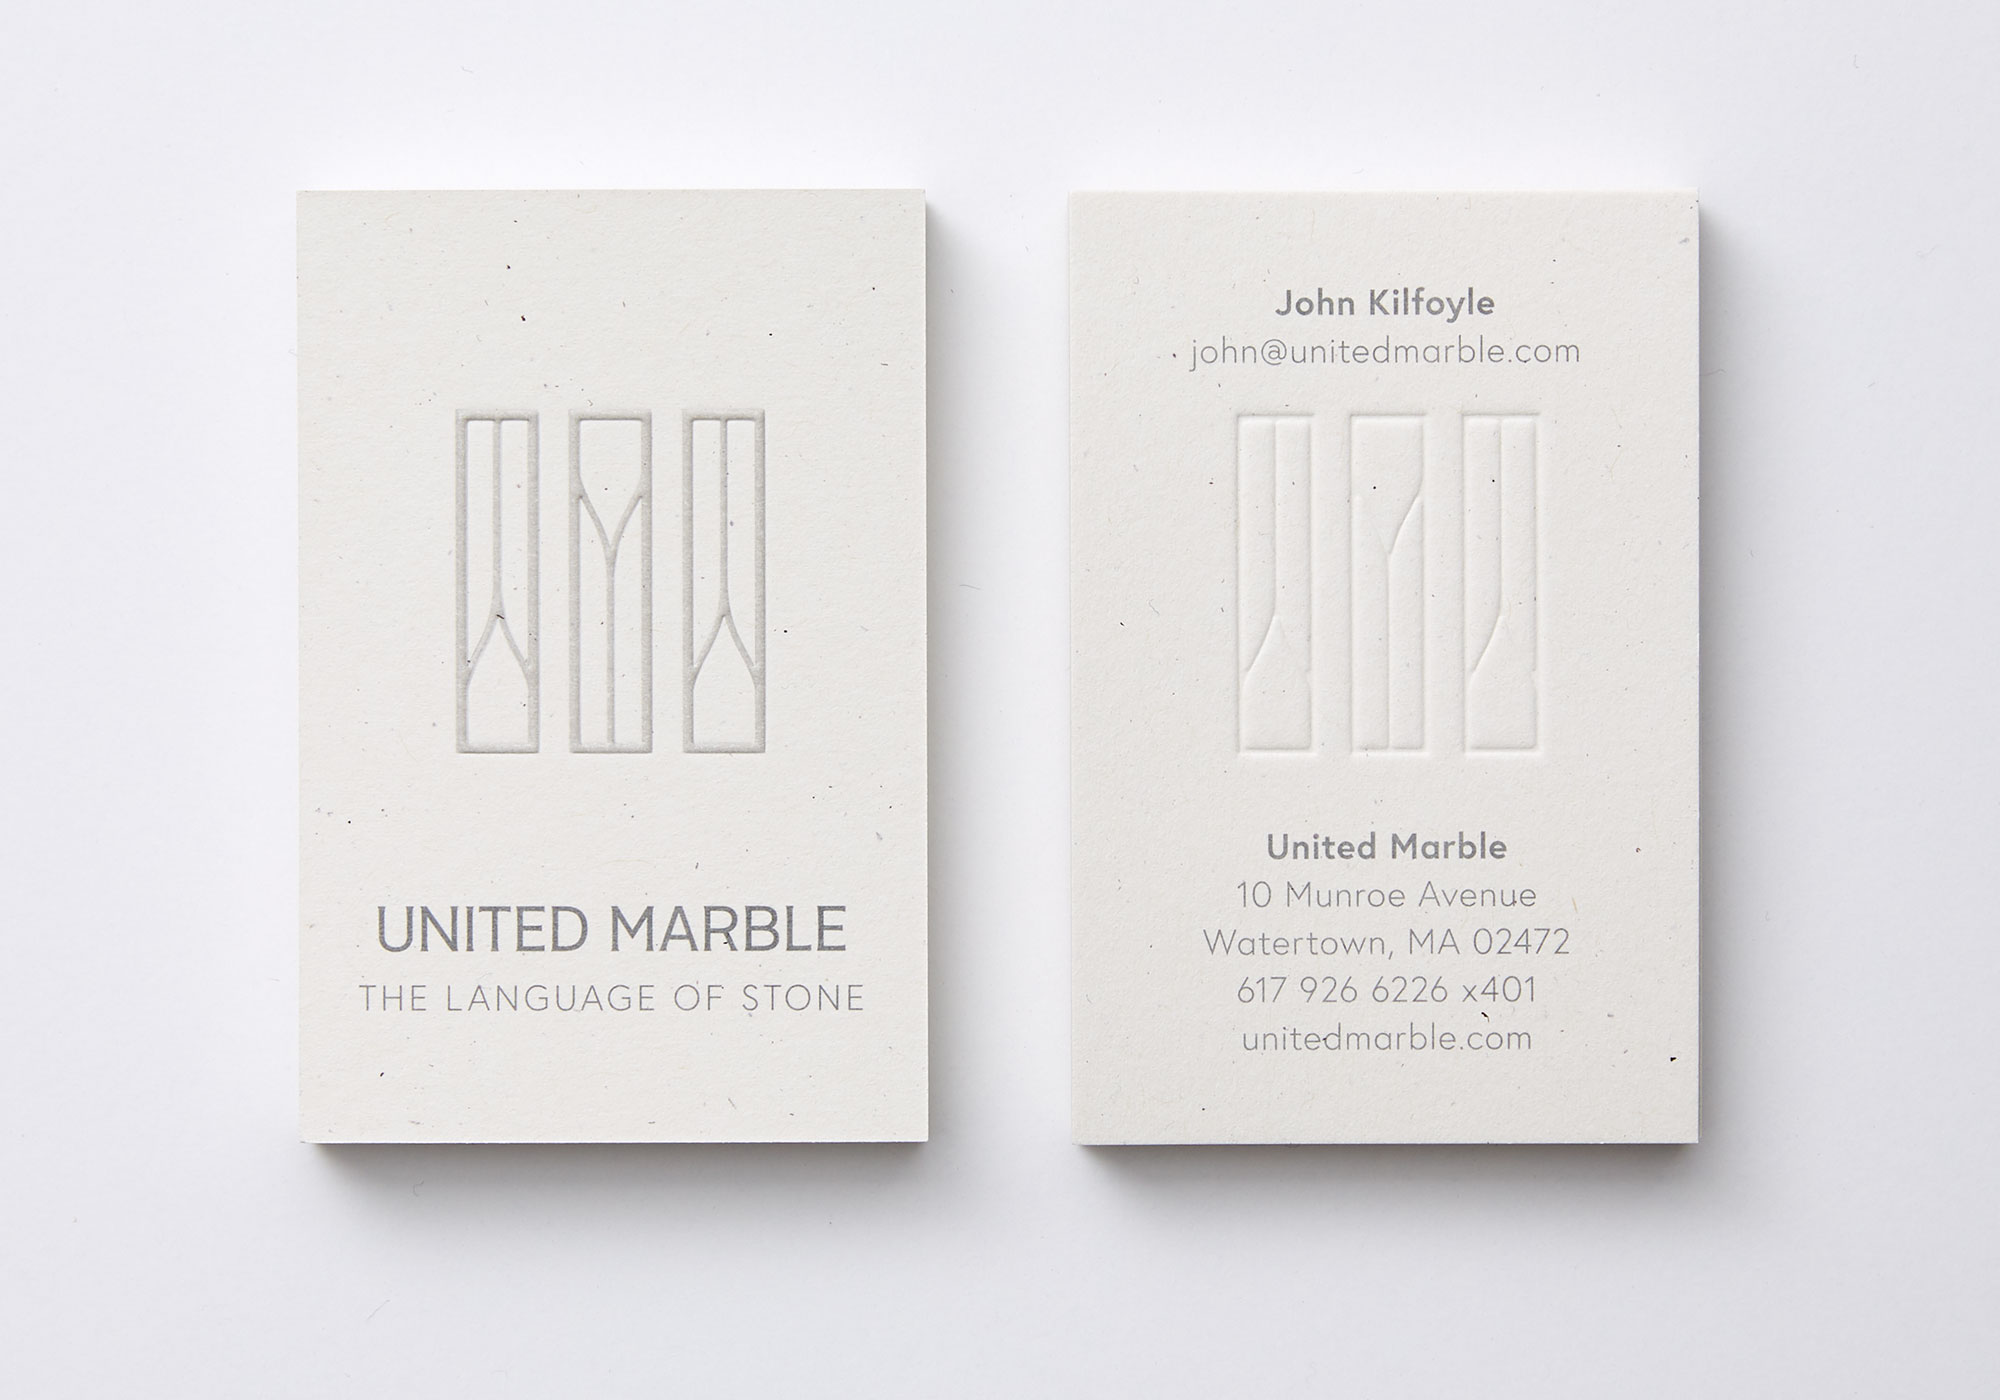 United Marble Business Cards